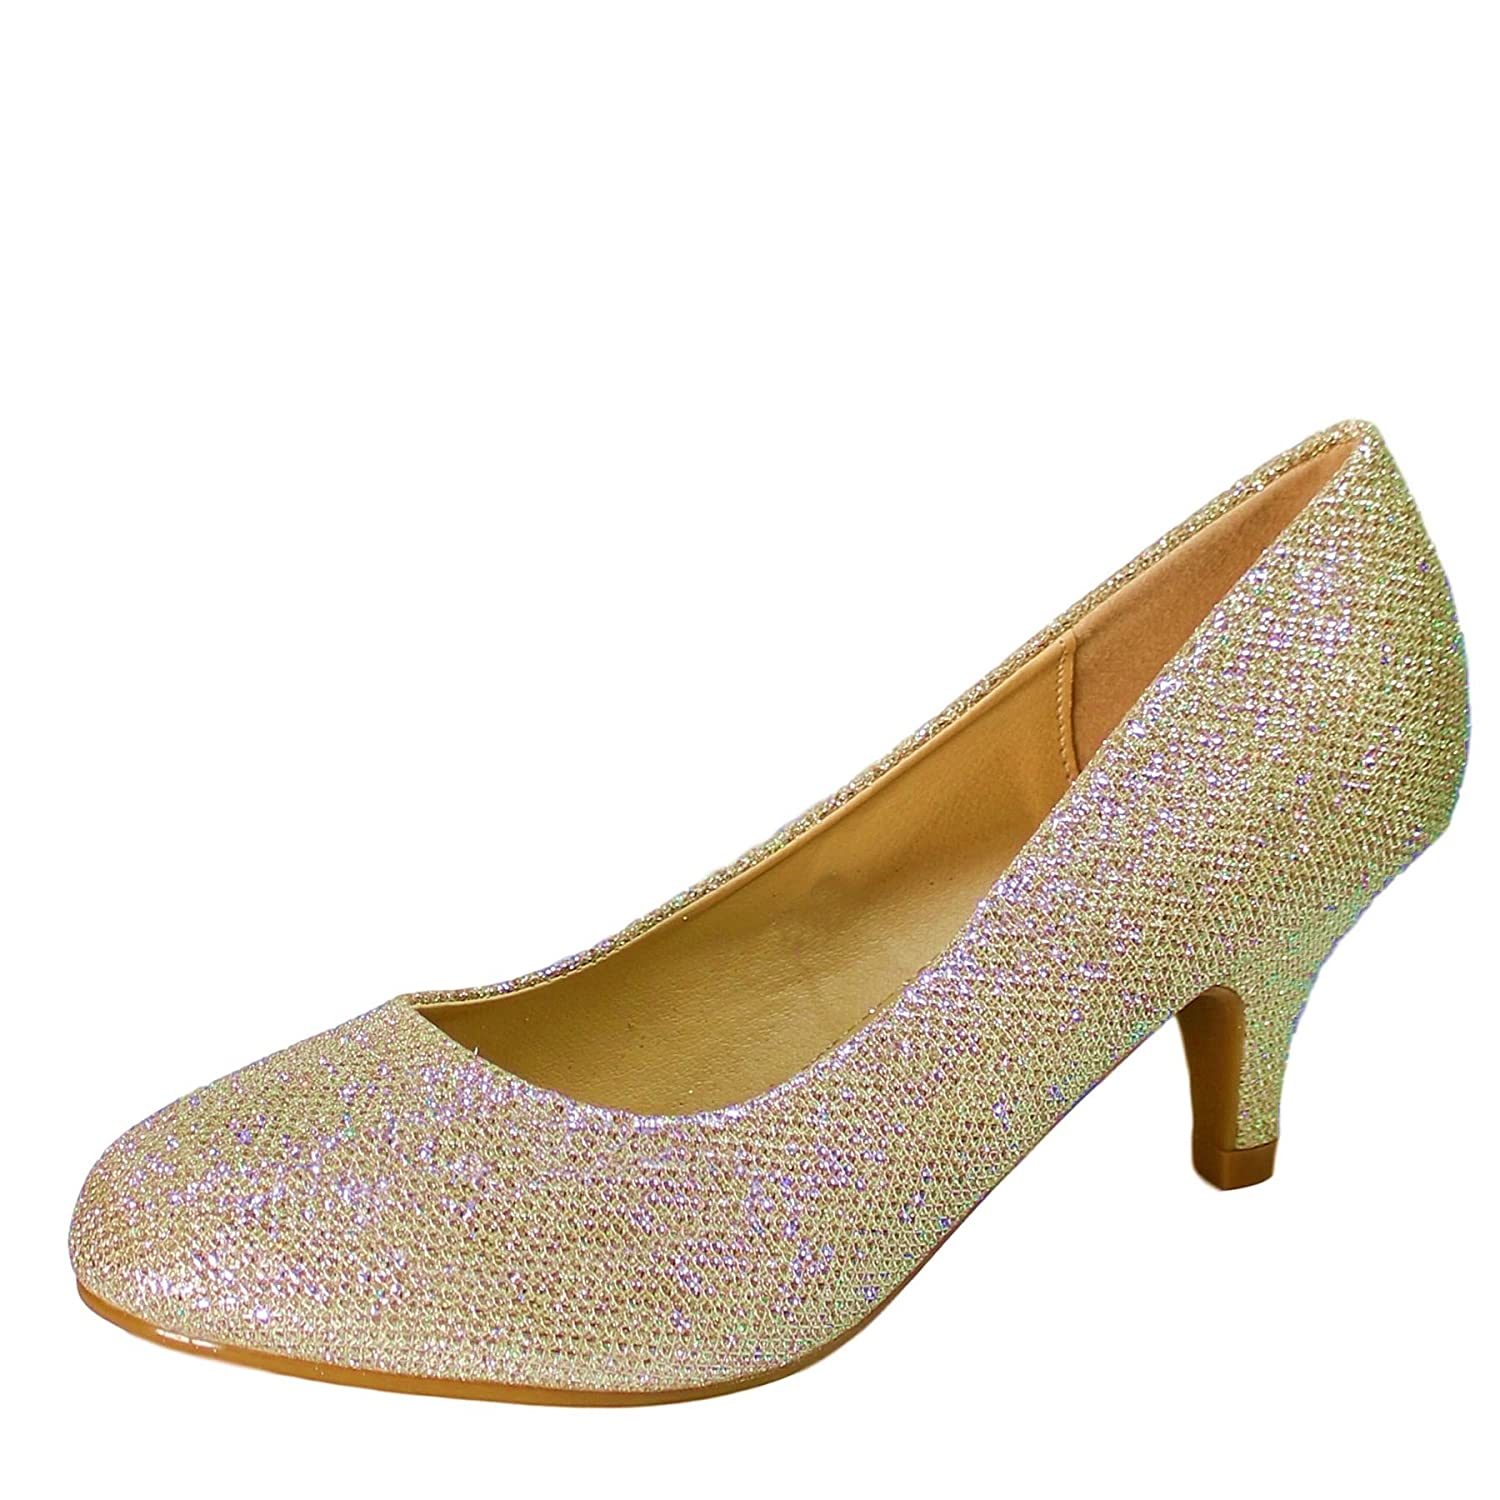 69f26c8a9483e Rock on Styles New Ladies Party Prom Evening Kitten Heel Court Shoes Plus  Sizes Size 98-19